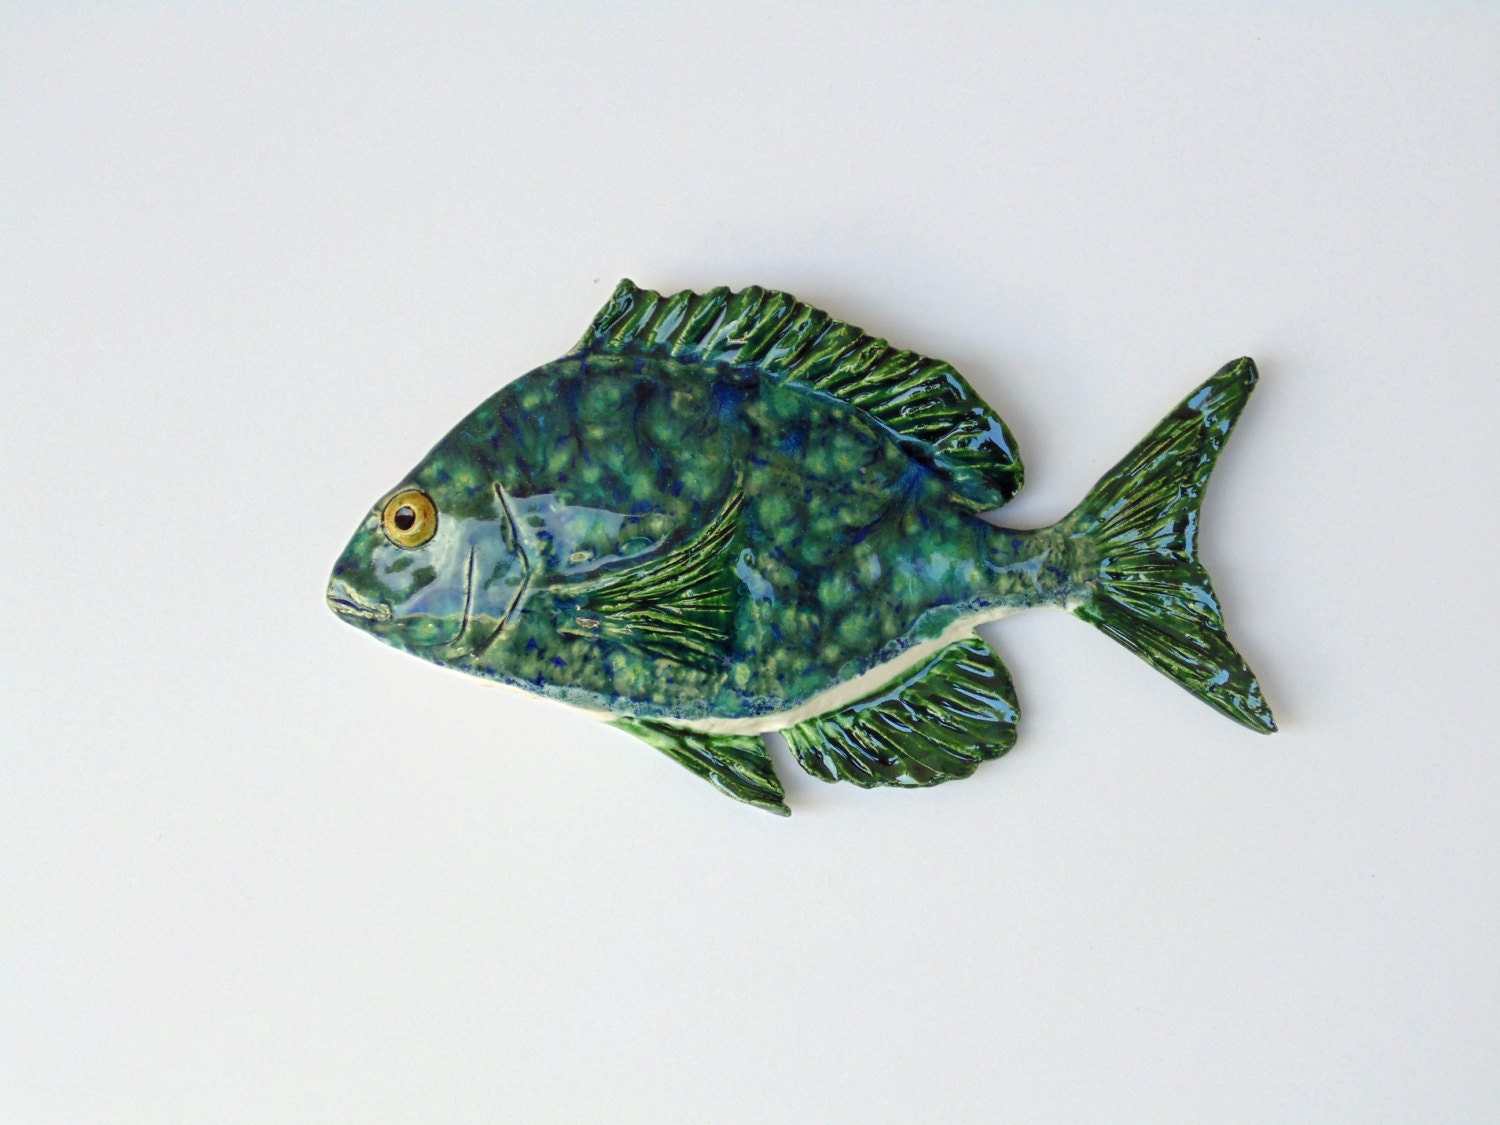 Ceramic scup fish art decorative wall hanging by for Fish wall hanging